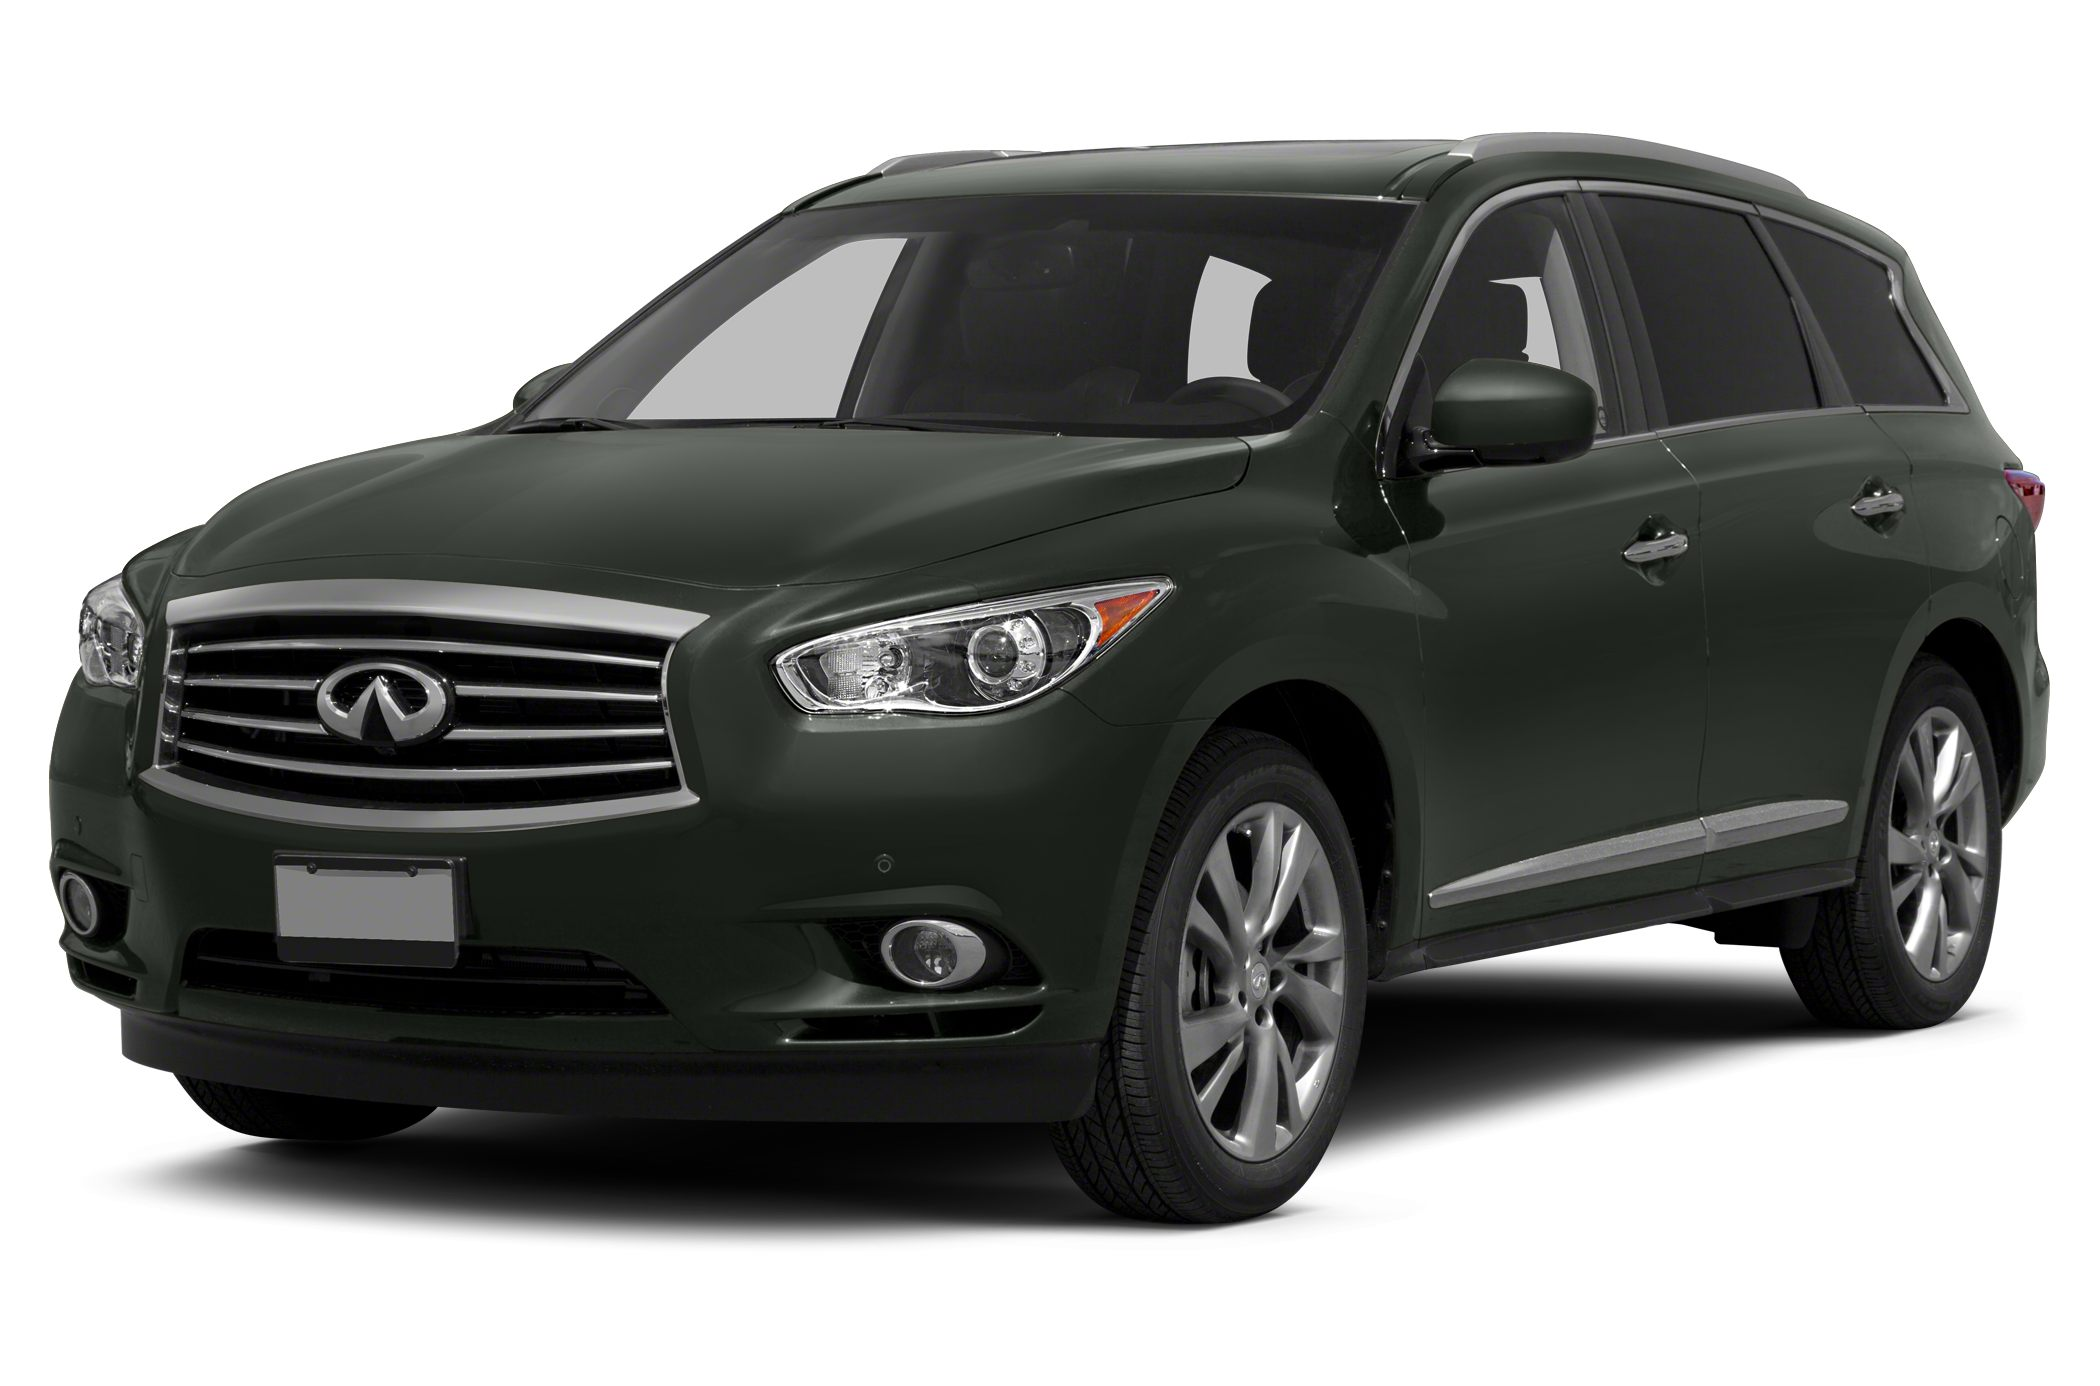 Infiniti JX35 News, Photos and Buying Information - Autoblog